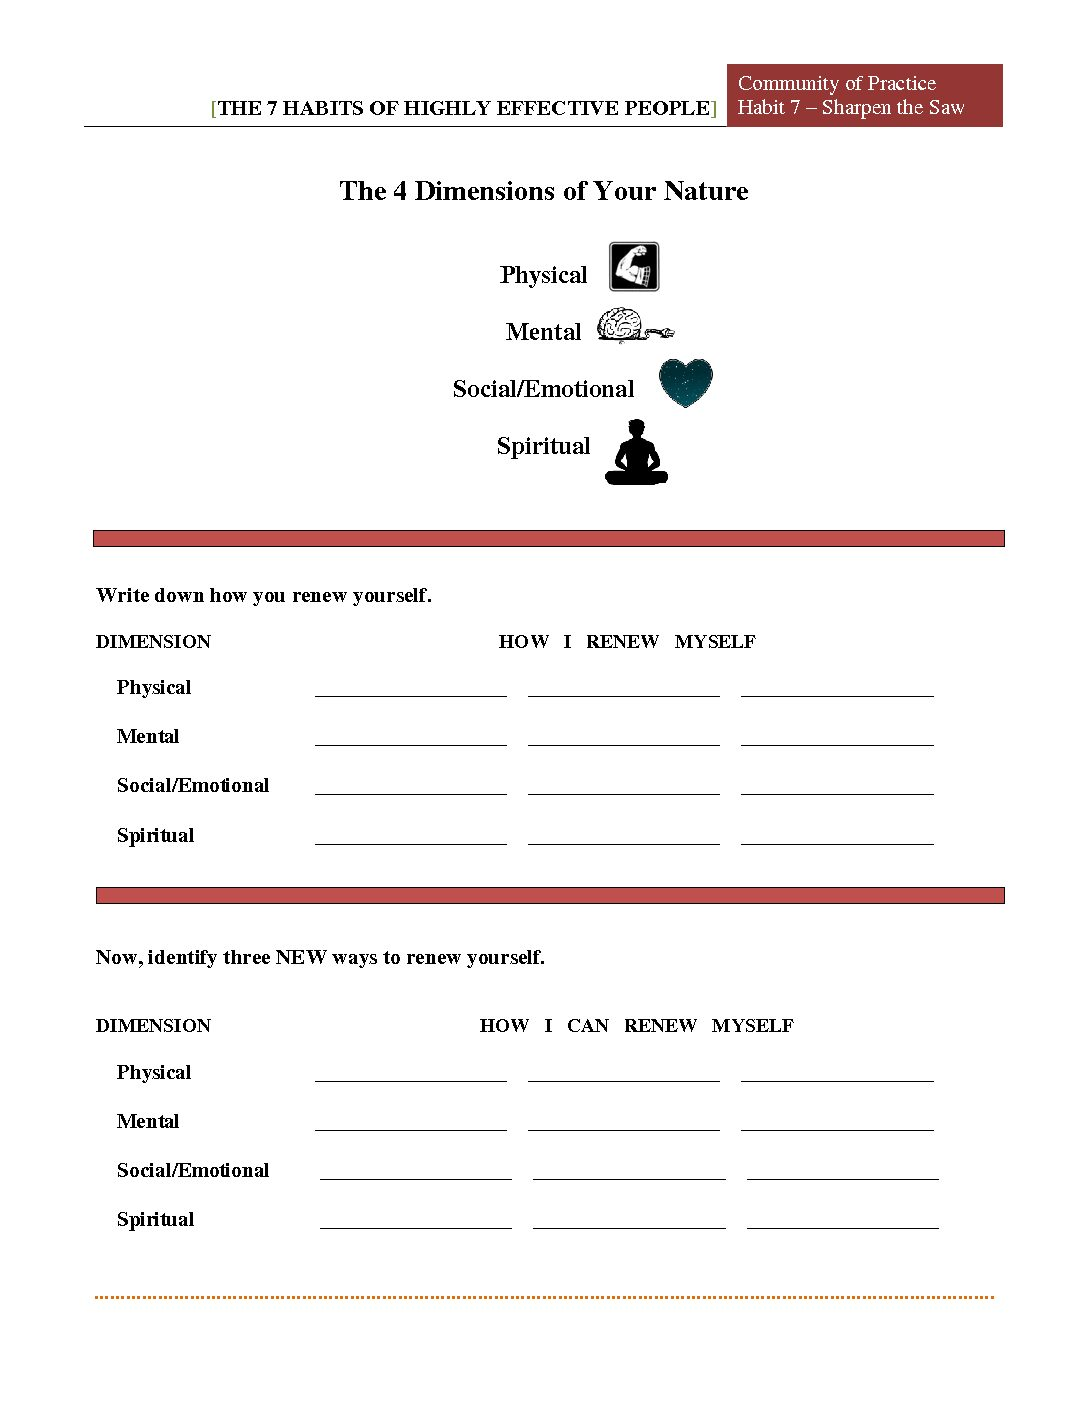 7 Habits Worksheet